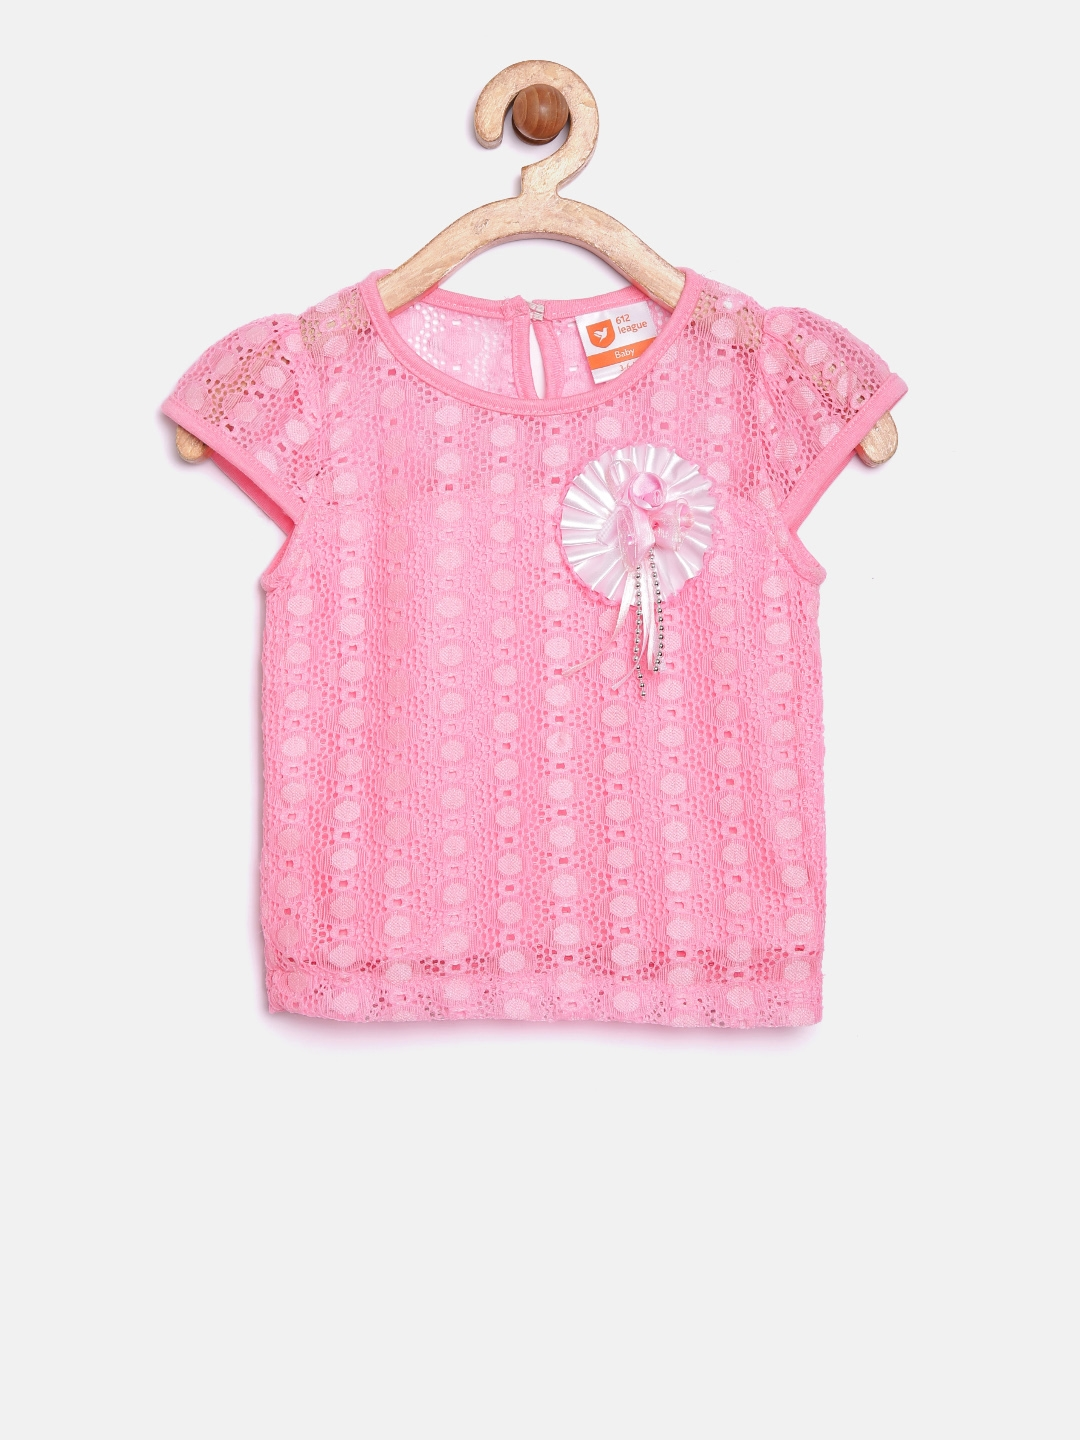 6f85fe46fc0e0a Buy 612 League Infant Girls Pink Lace Top - Tops for Girls 1901867 ...